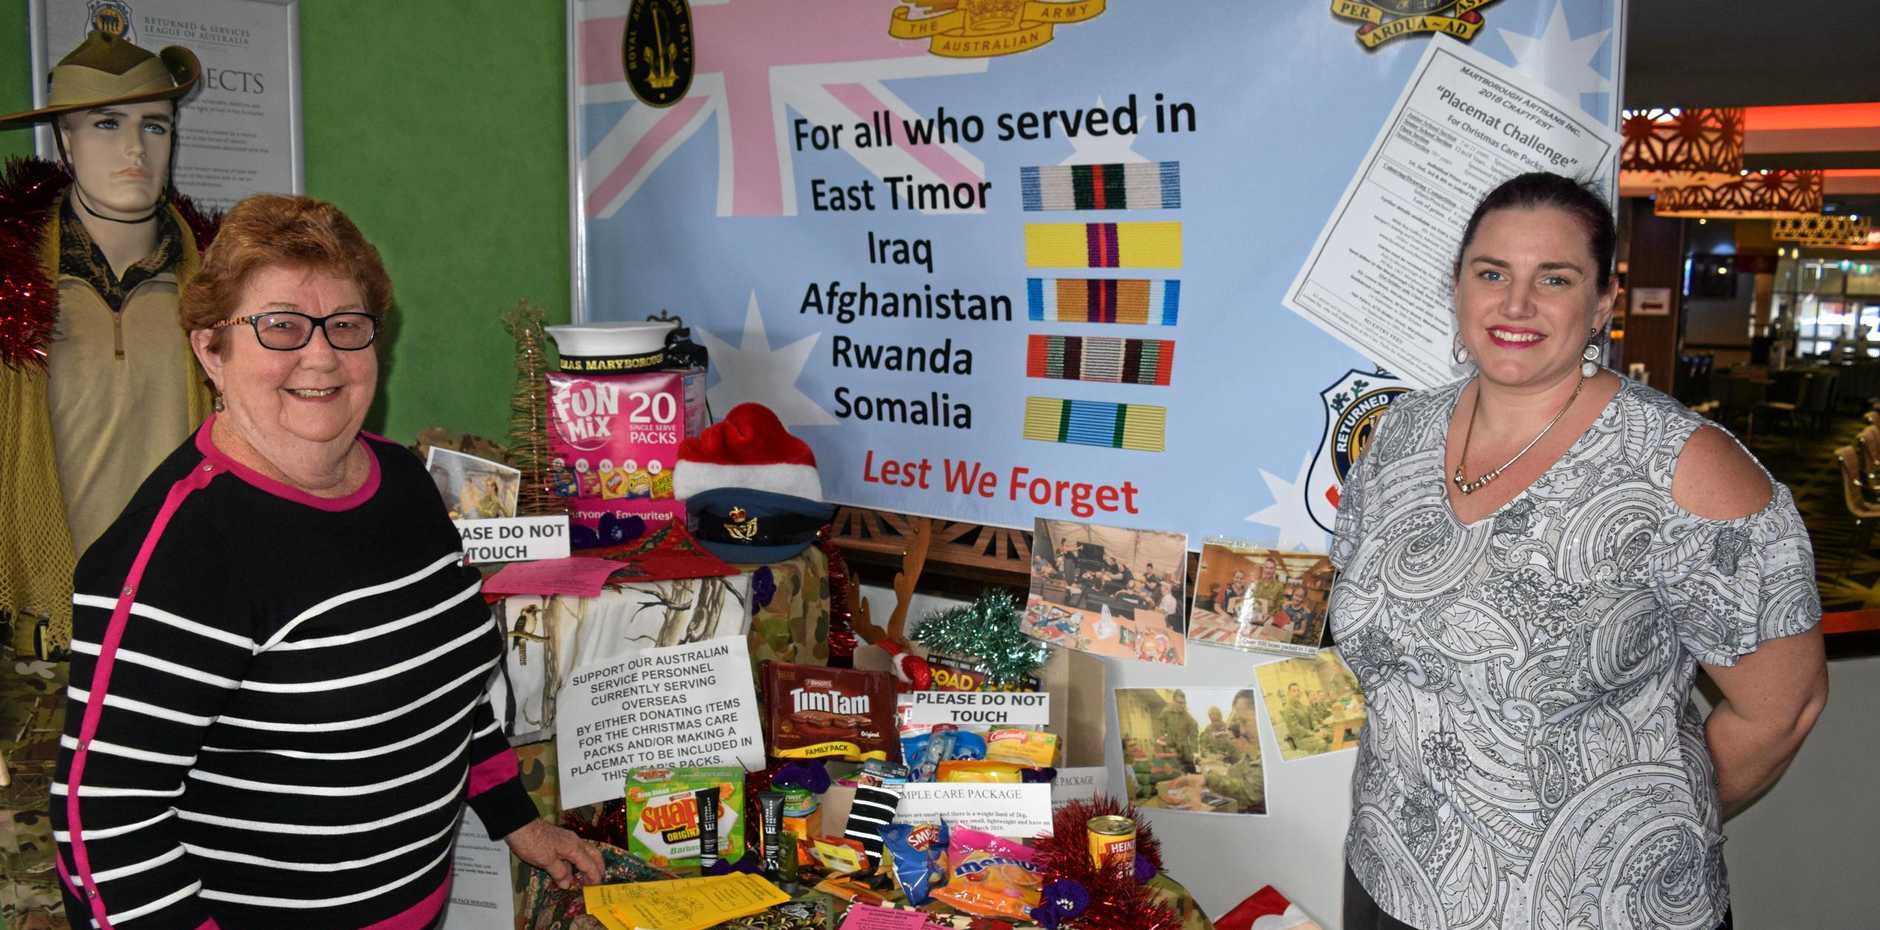 Maryborough Artisan Lesley Mason and Maryborough RSL sub-branch secretary Ebony Blackwood invite club patrons to inspect and ask questions about the Craftfest Challenge and Troops Care Package donations display in the Lennox St foyer.